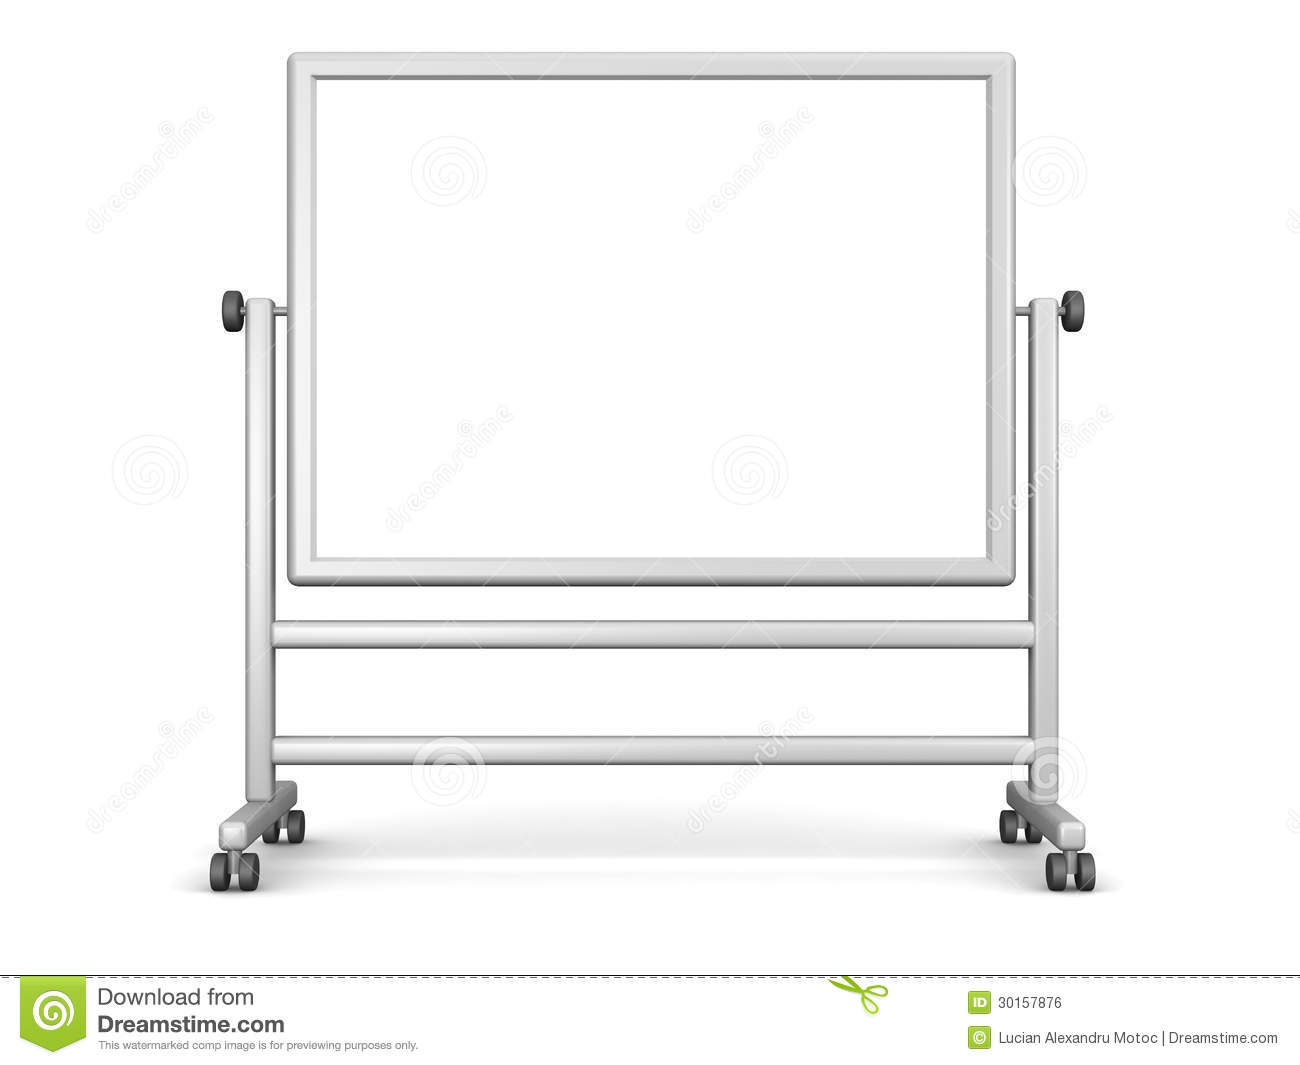 Tableau Blanc Mobile Grand Tableau Blanc Illustration Stock Illustration Du Affaires